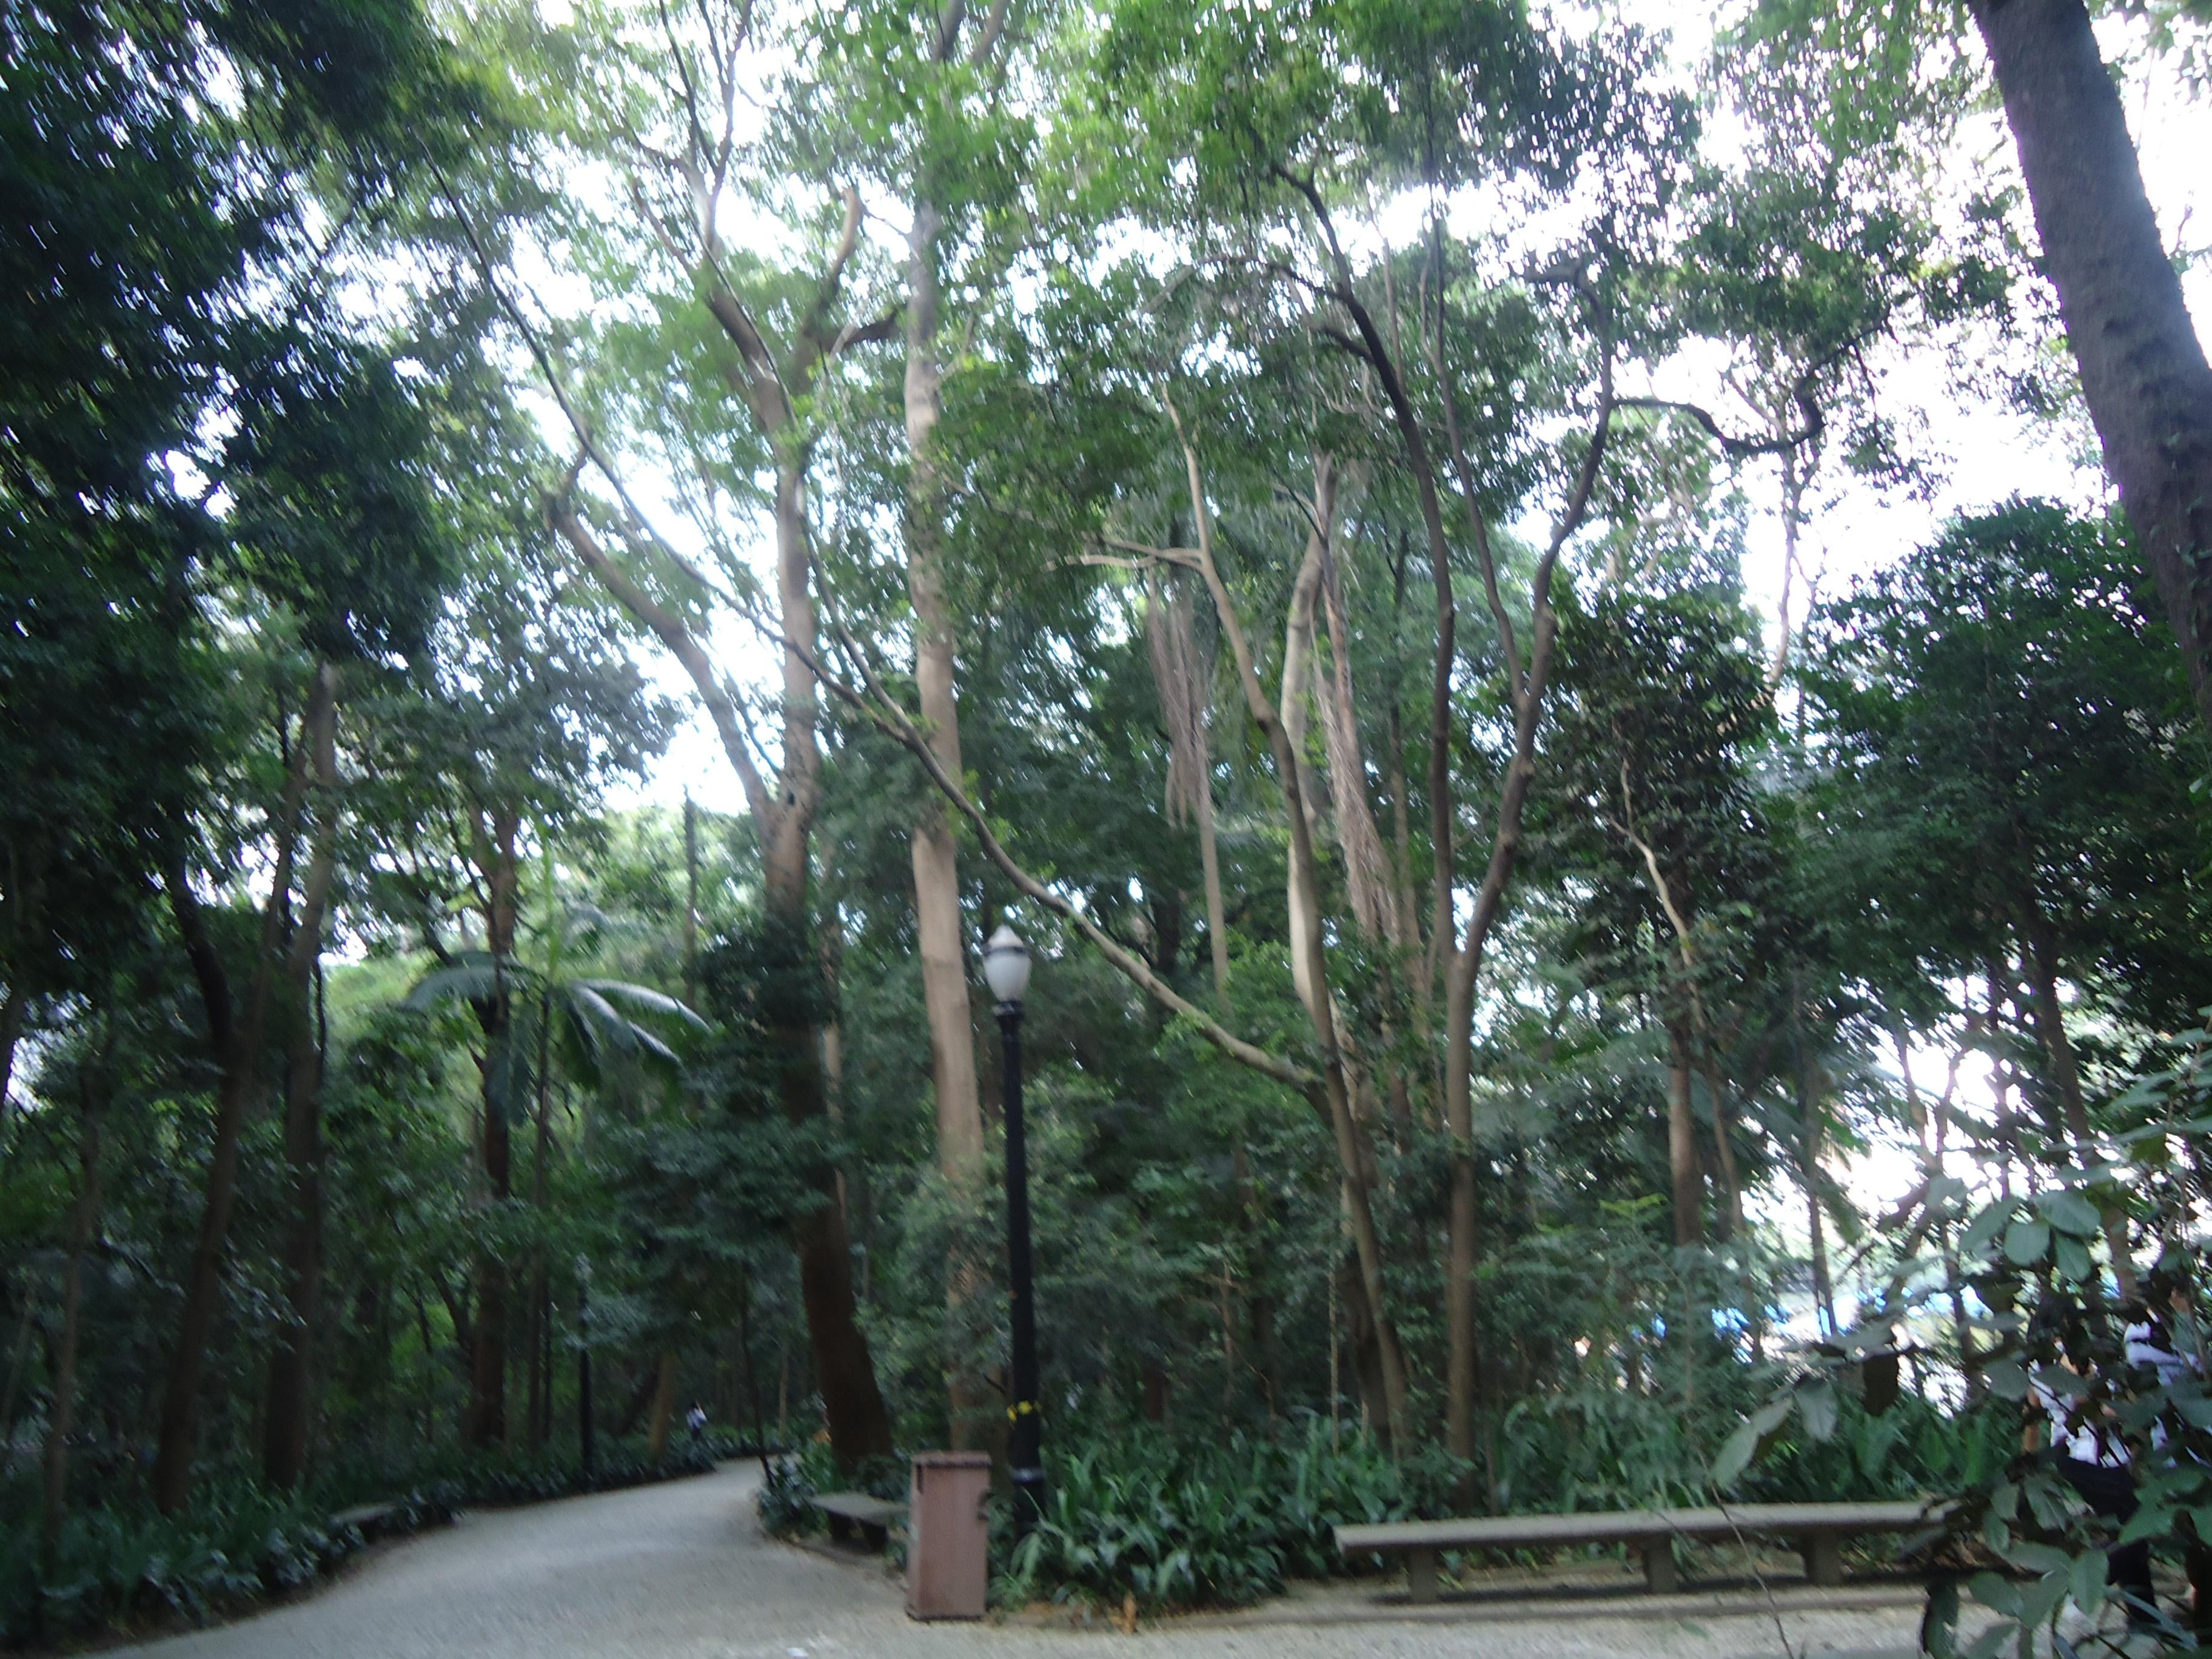 Bosque en Parque Trianon